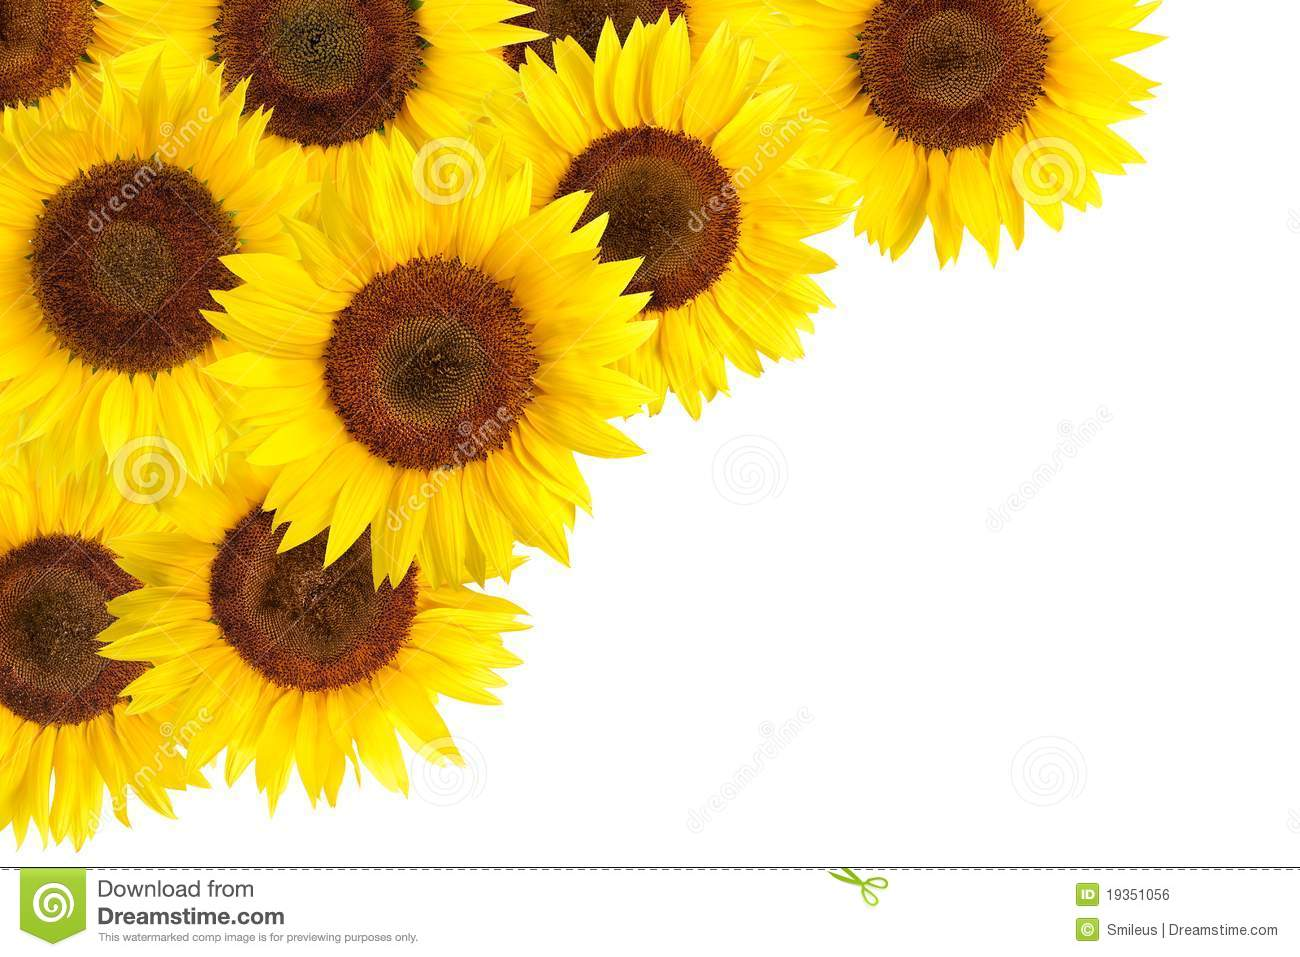 sunflowers border with white copy space royalty free stock